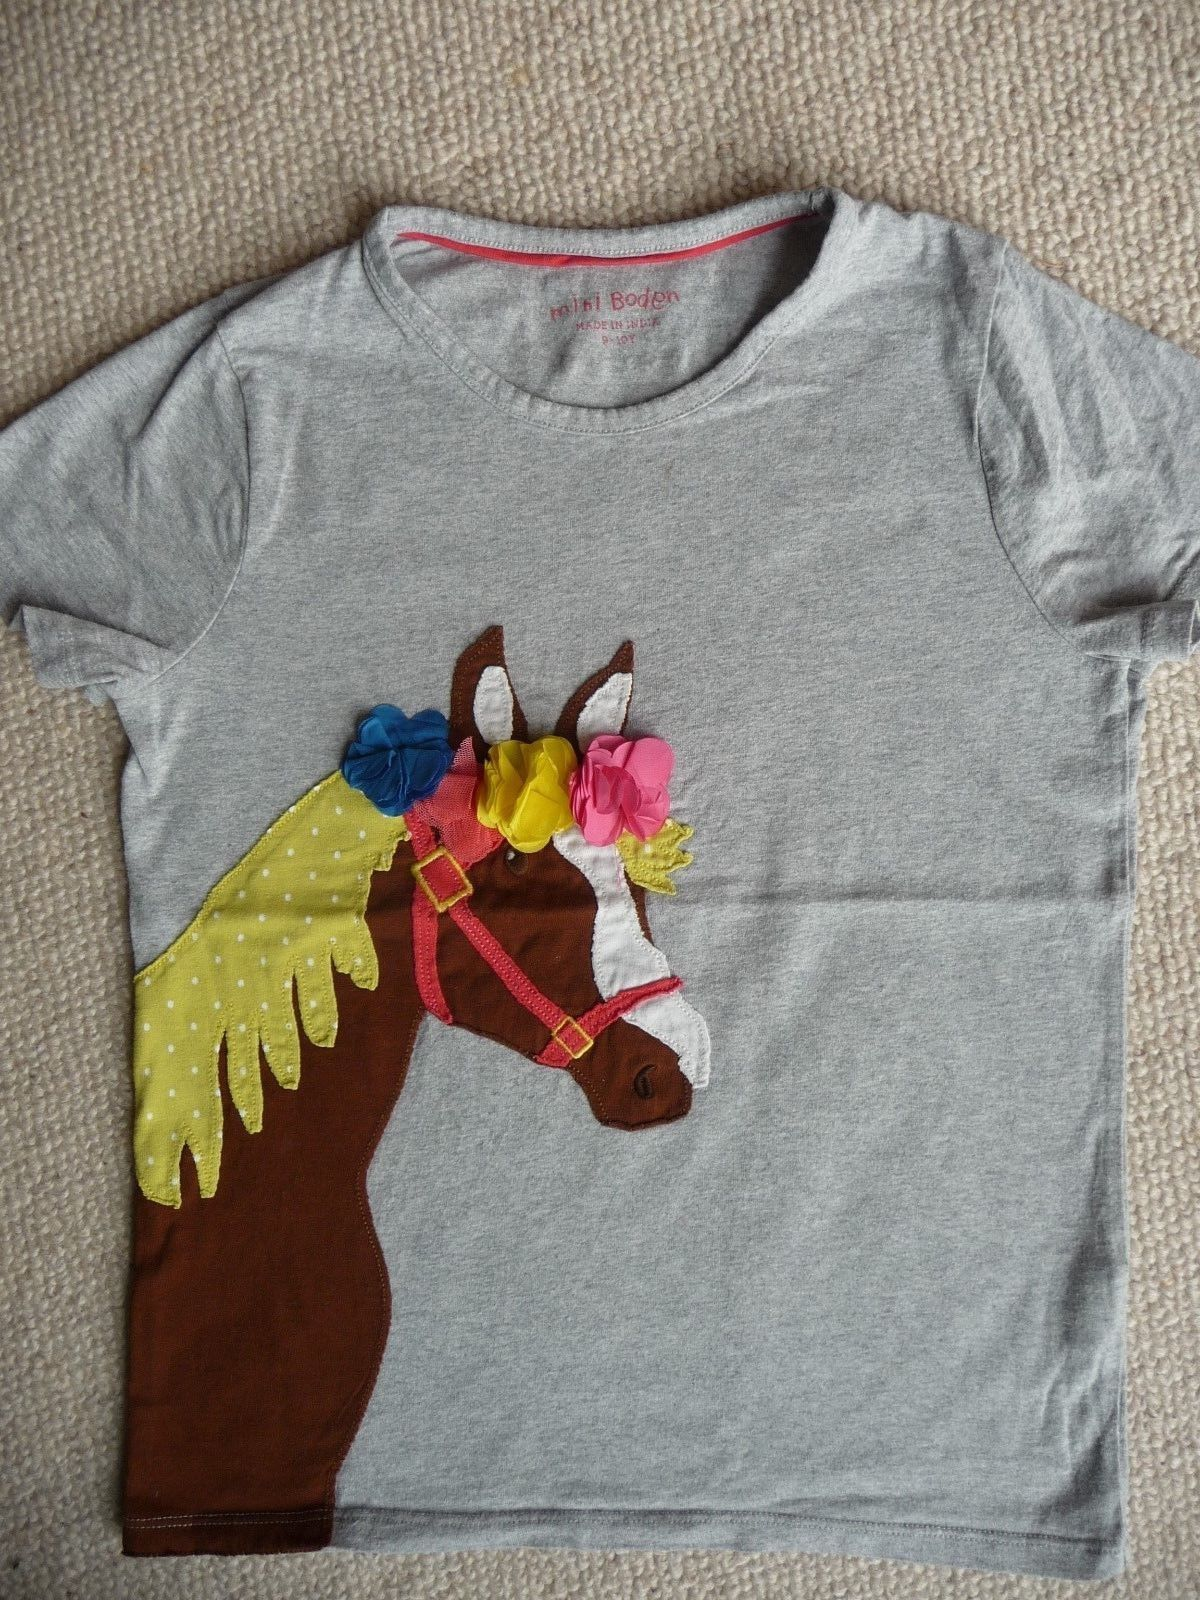 MINI BODEN T-Shirt Pullover Applikation Stickerei Pferd grau bunt 9 10 134 140